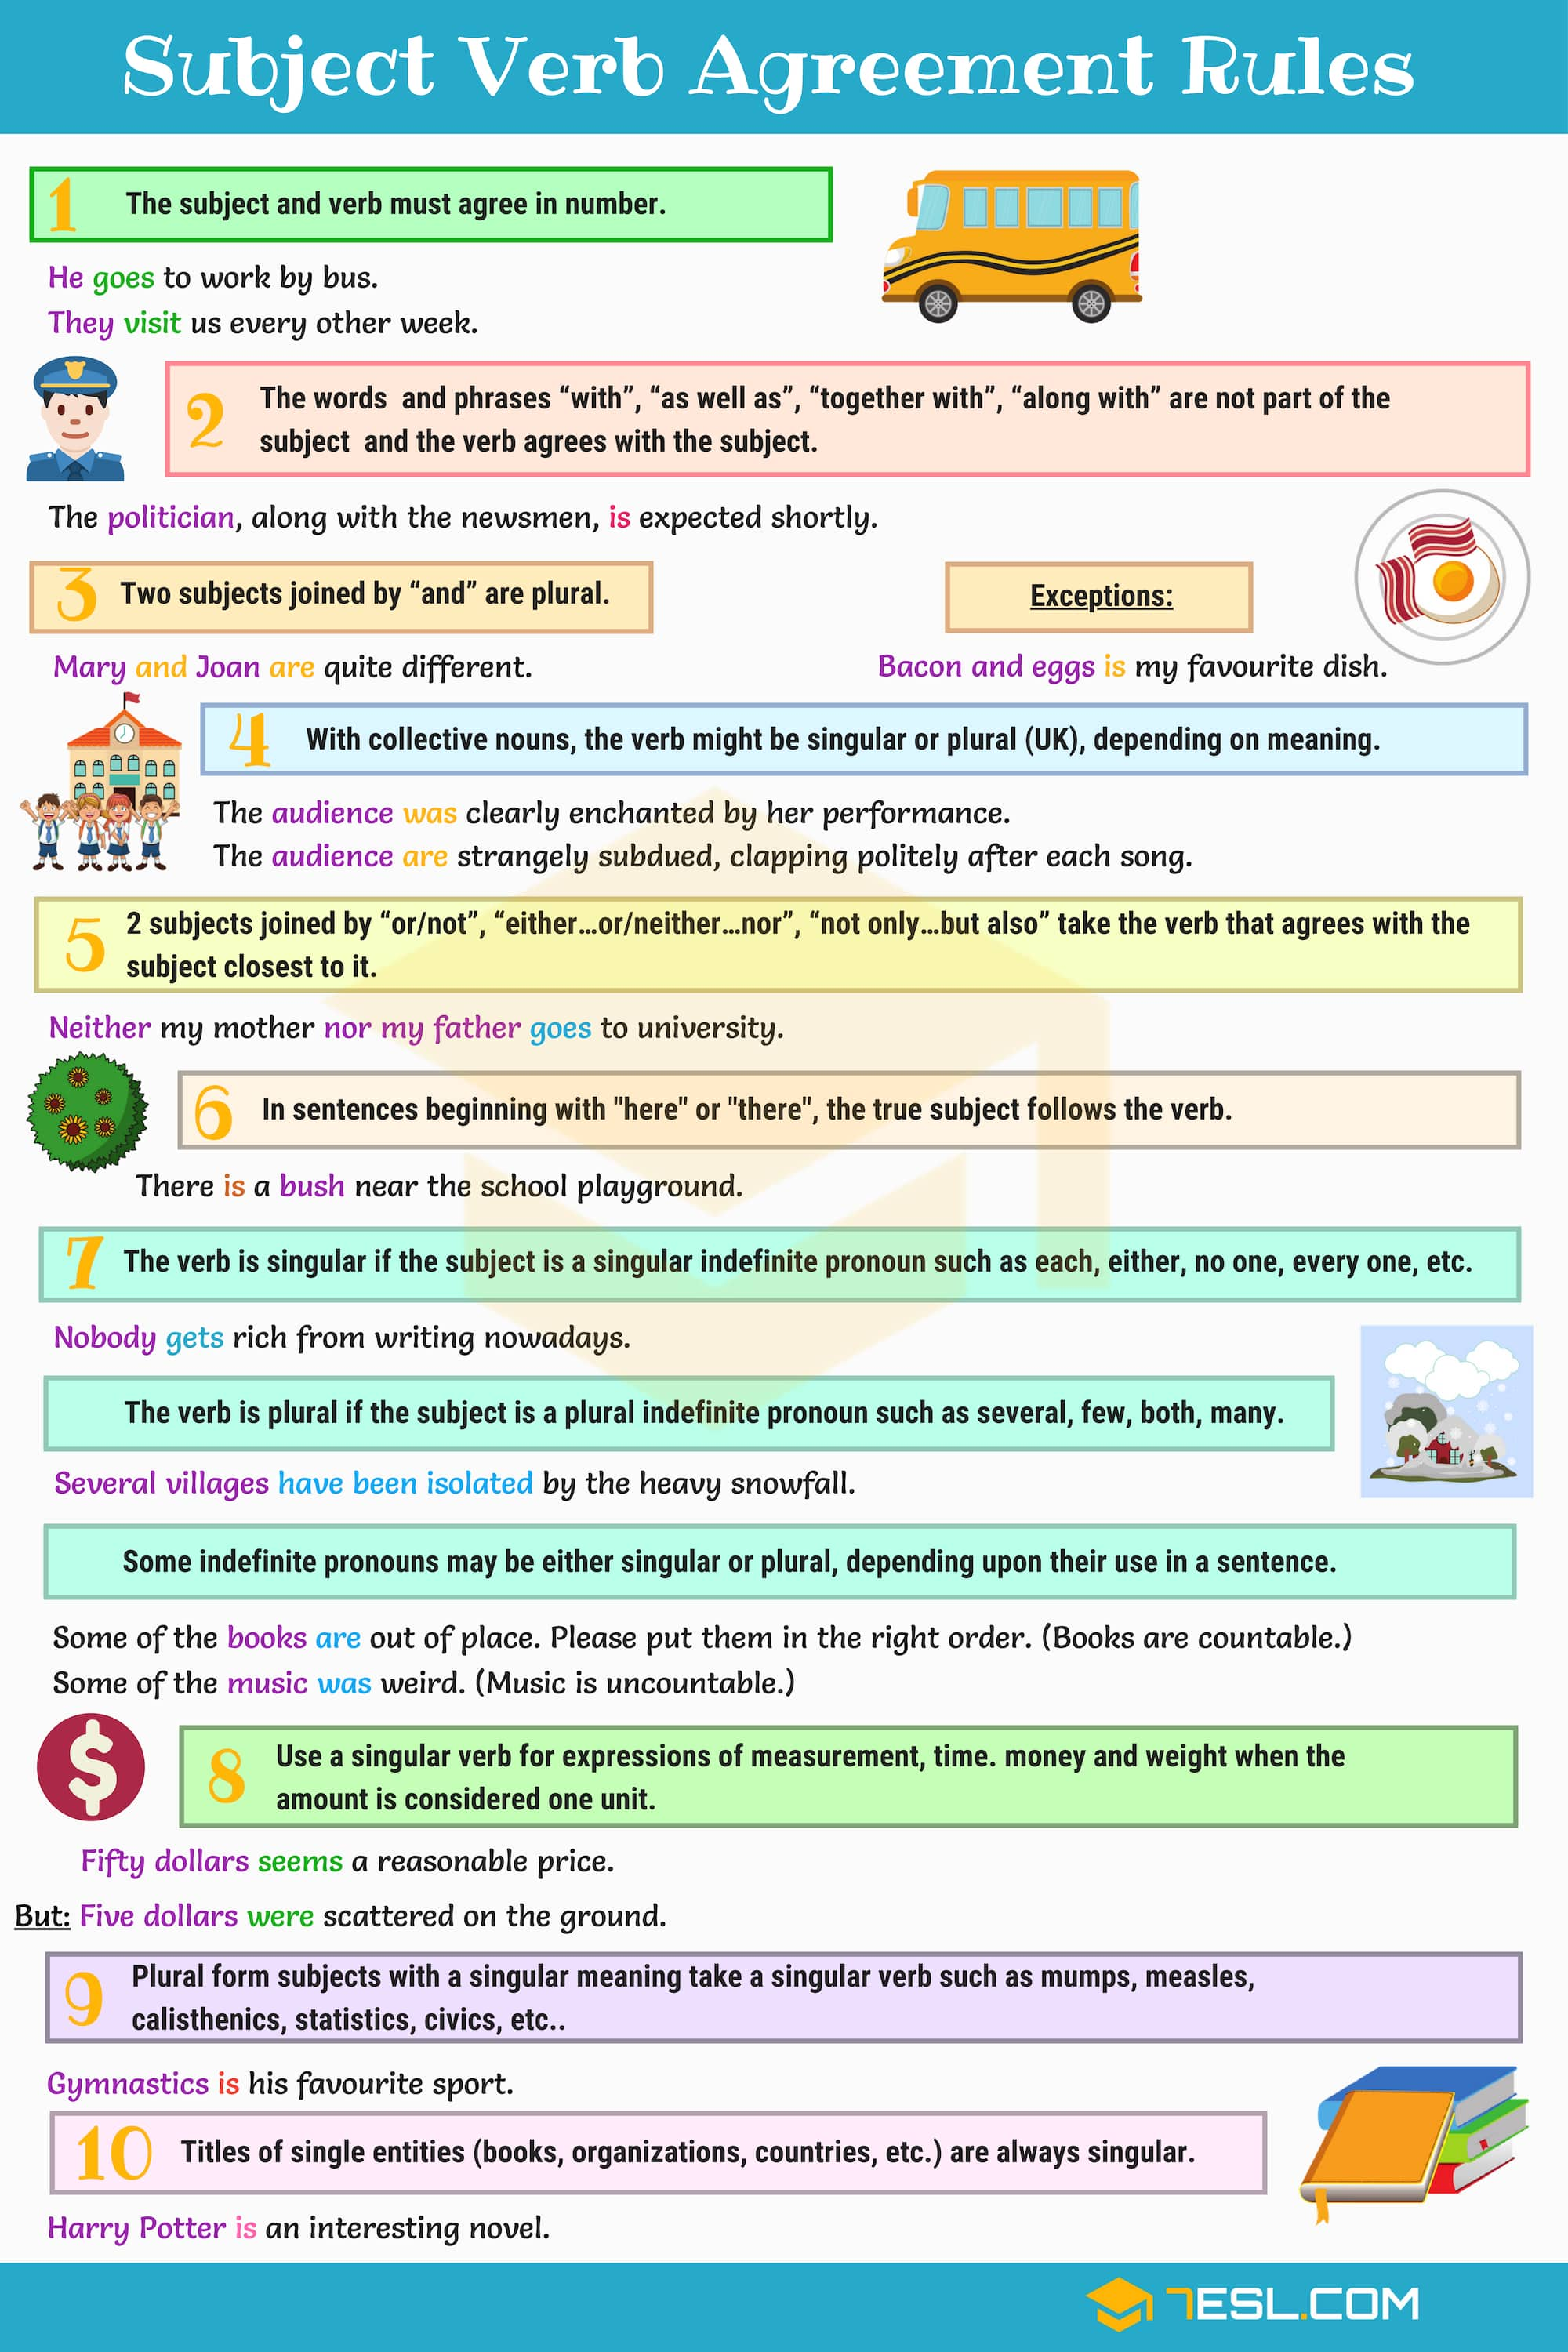 Subject Verb Agreement Rules And Useful Examples